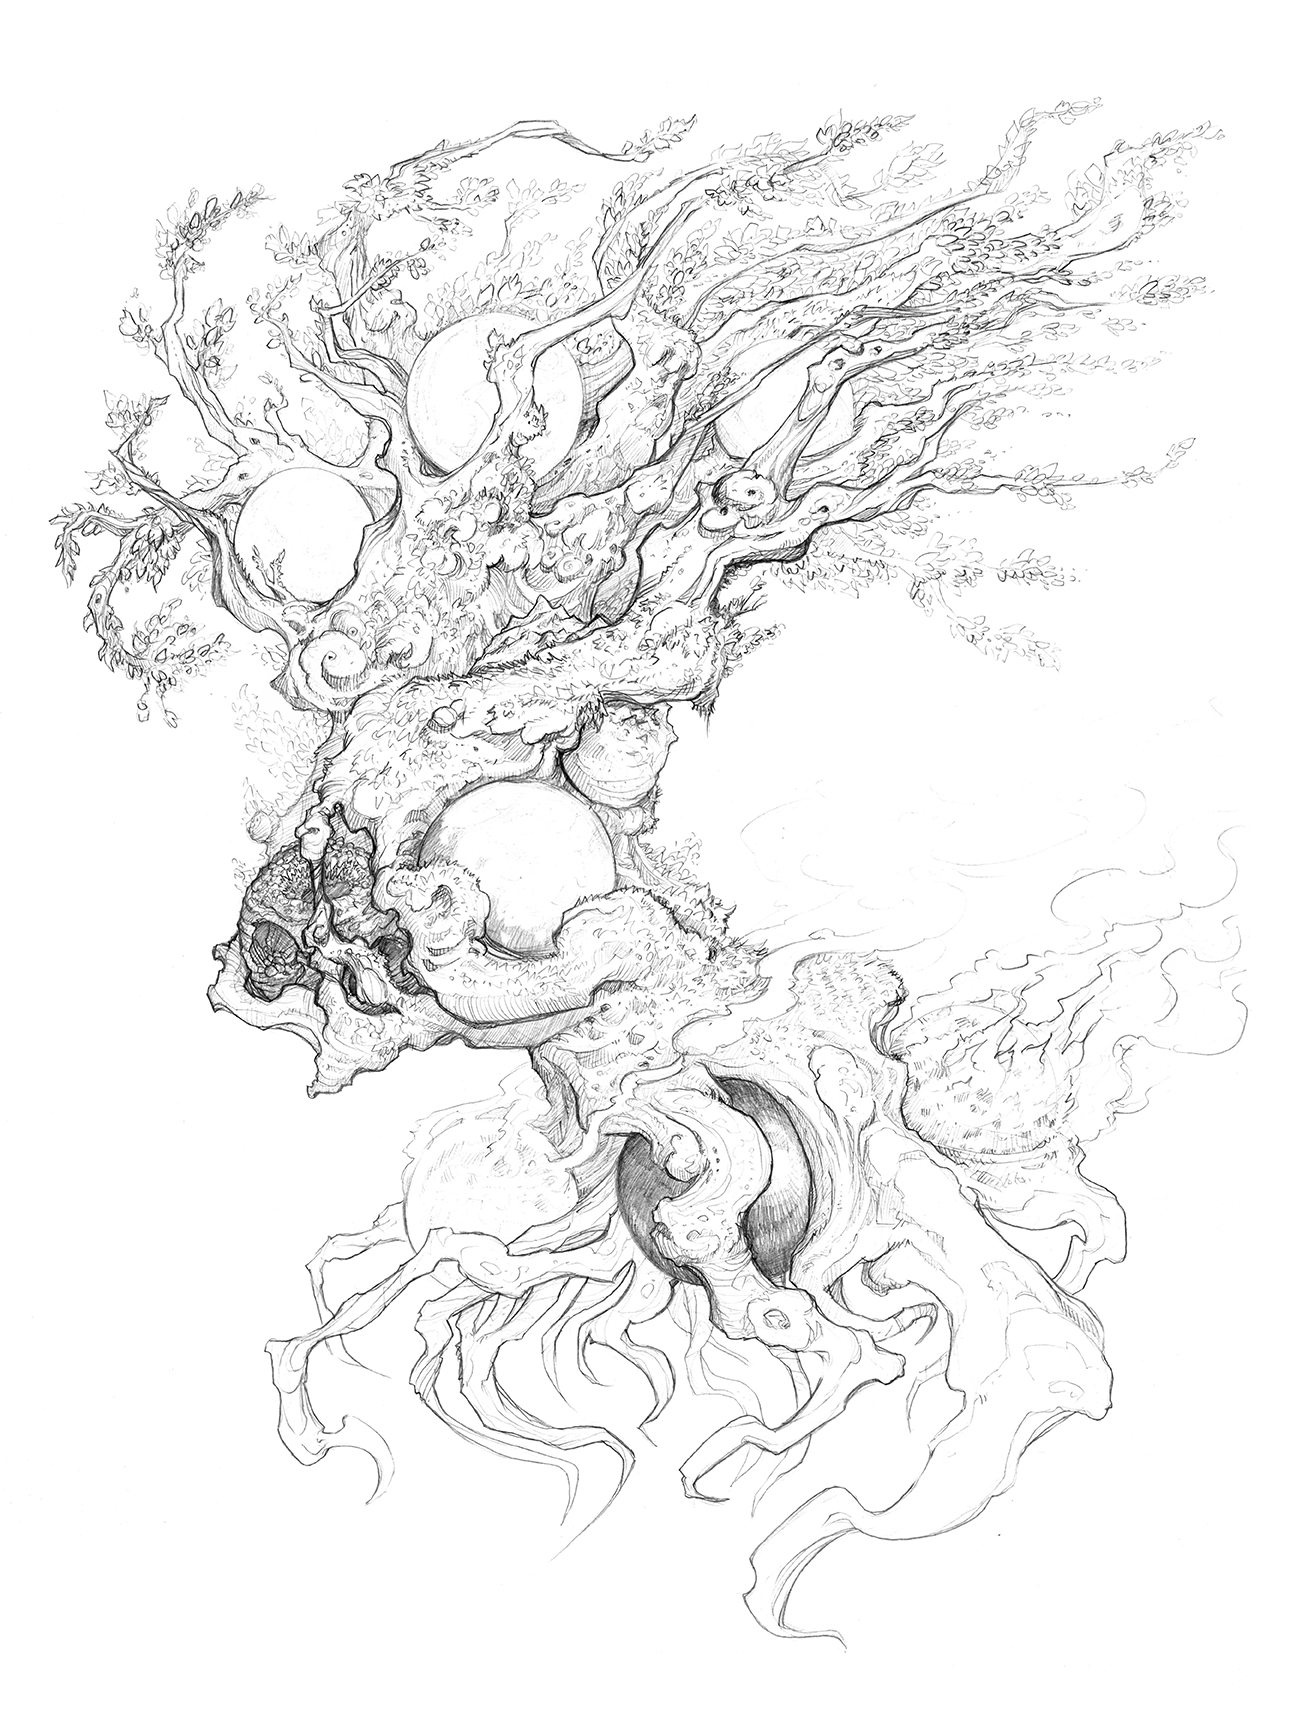 """Pencil Drawing for """"Yggdrasil, the World Tree""""  Copyright © 2018 Sam Flegal, All Rights Reserved"""